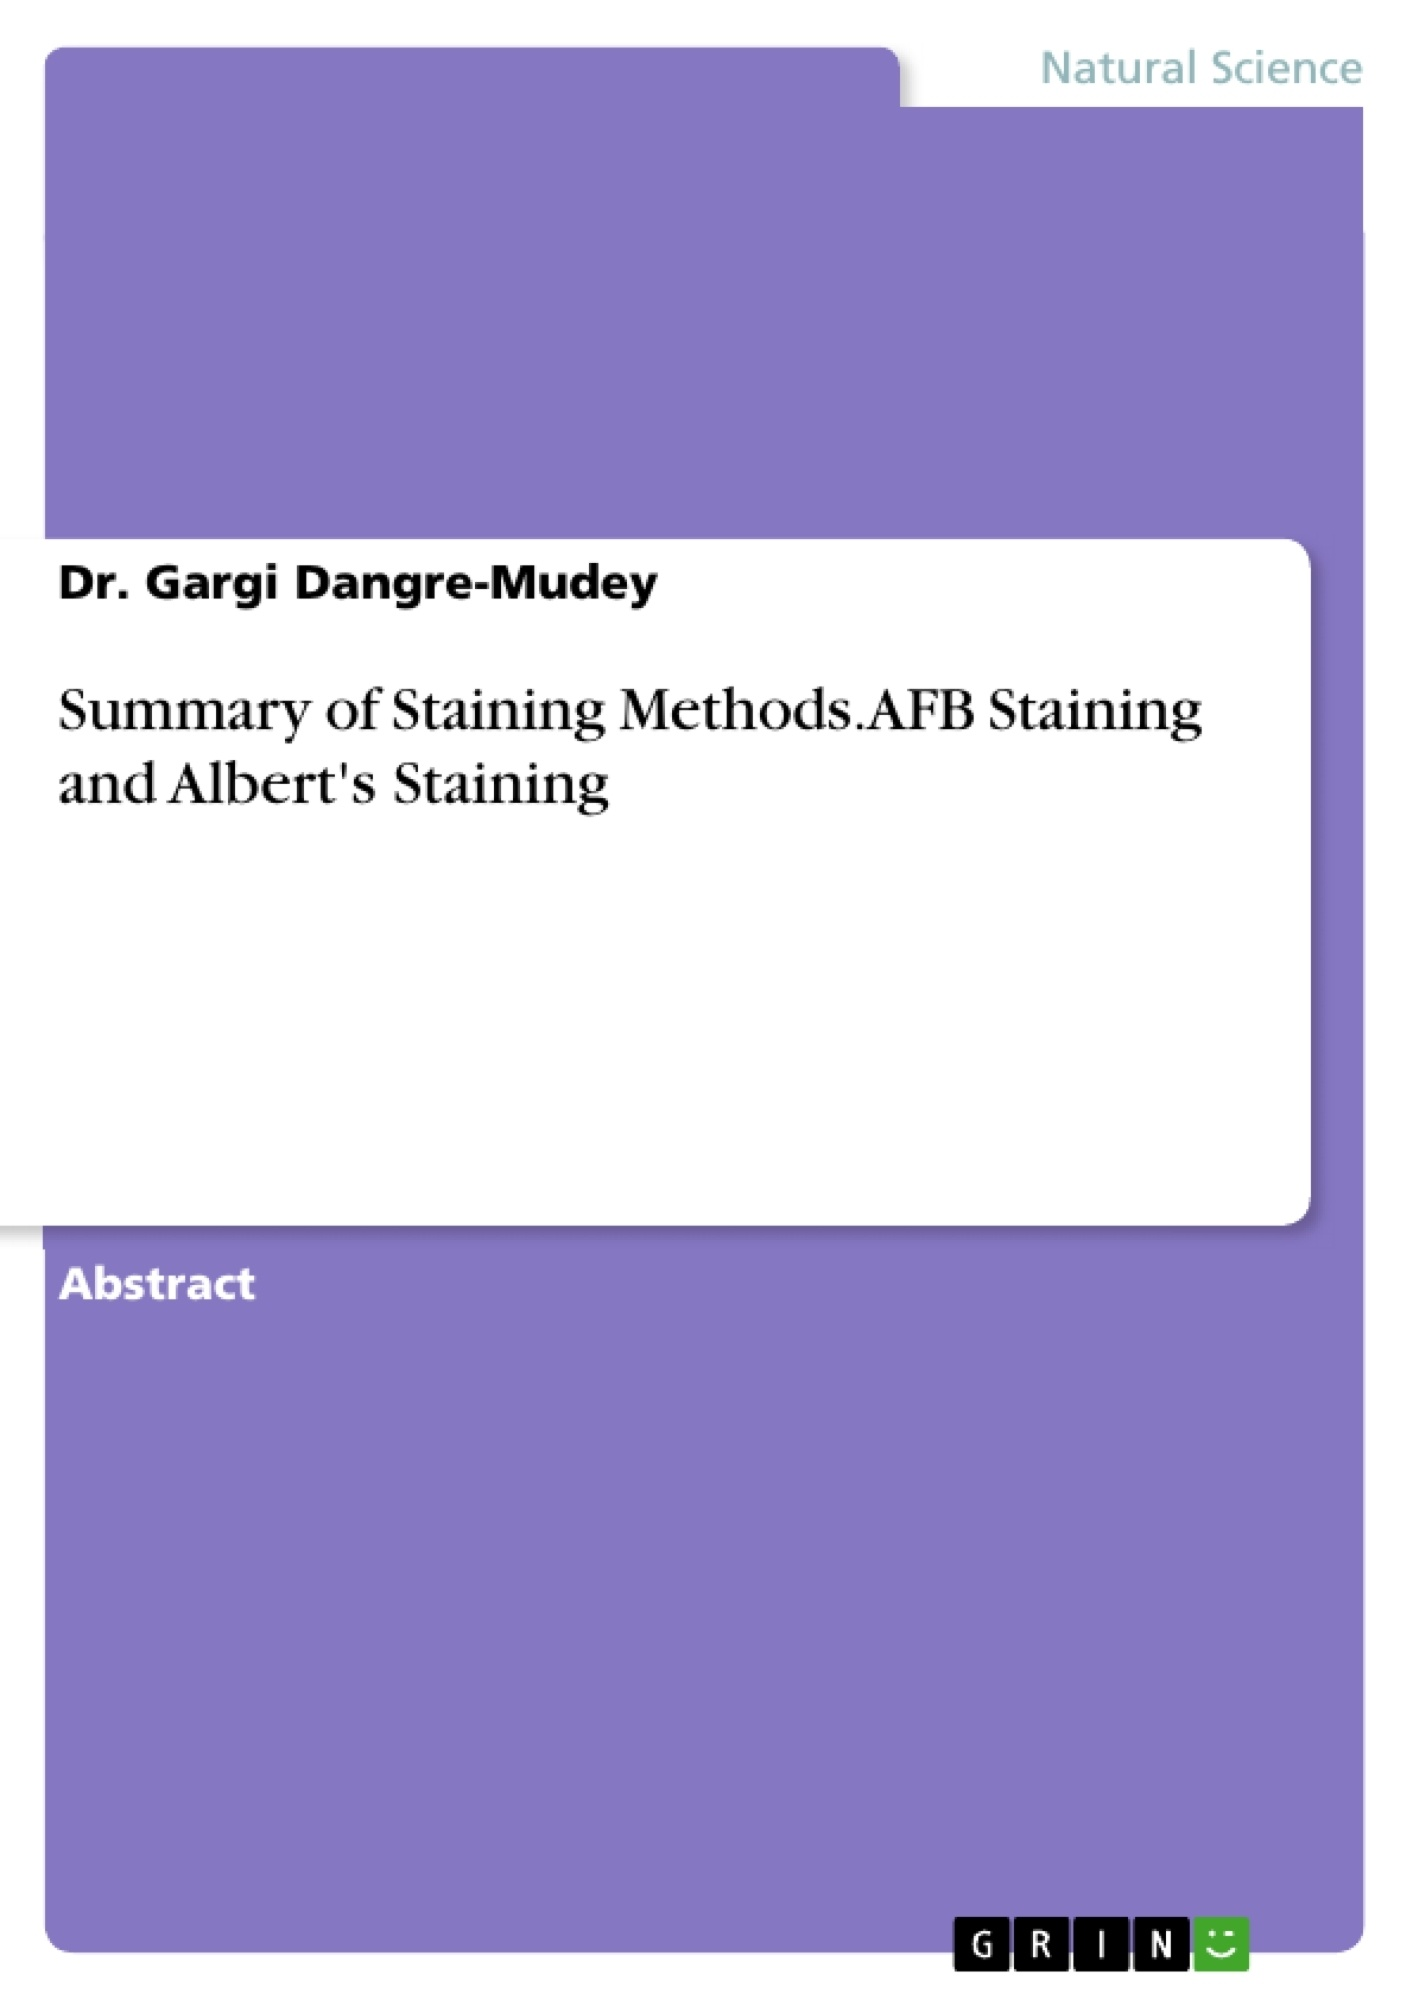 Title: Summary of Staining Methods. AFB Staining and Albert's Staining